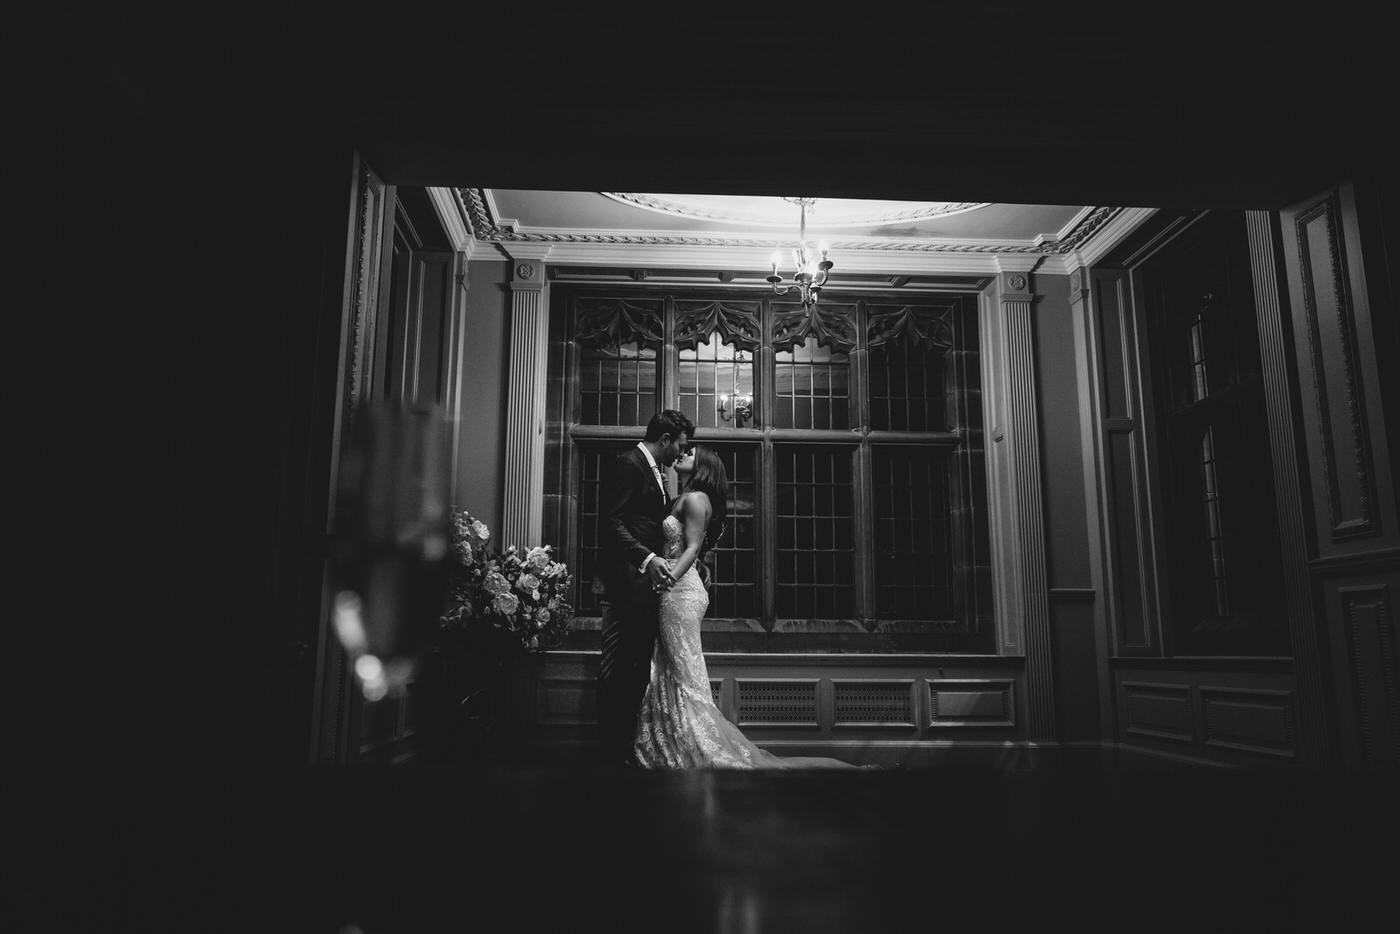 a beautiful monochromatic image of the bride and groom by a window